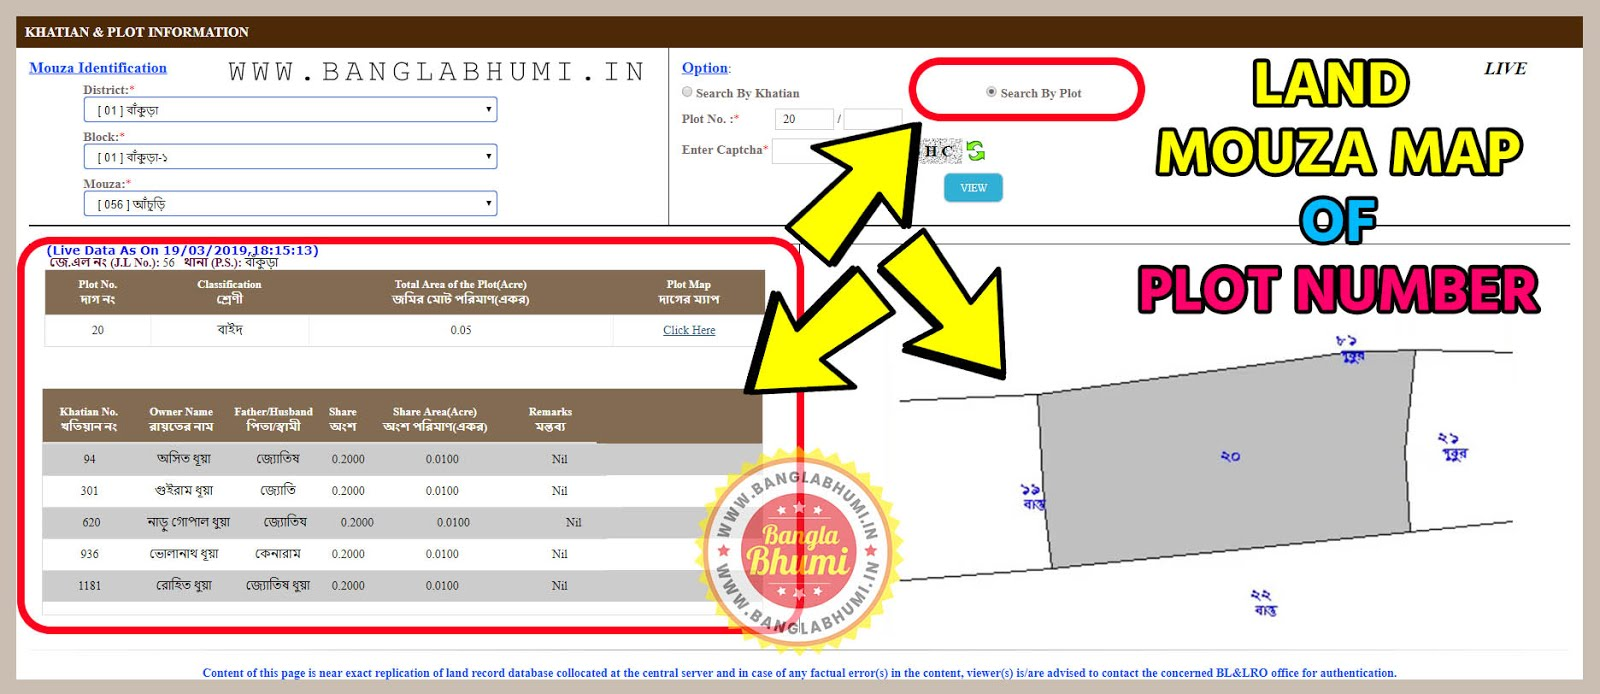 Find West Bengal Land Records With Khatian Number Plot Number -  Step 8